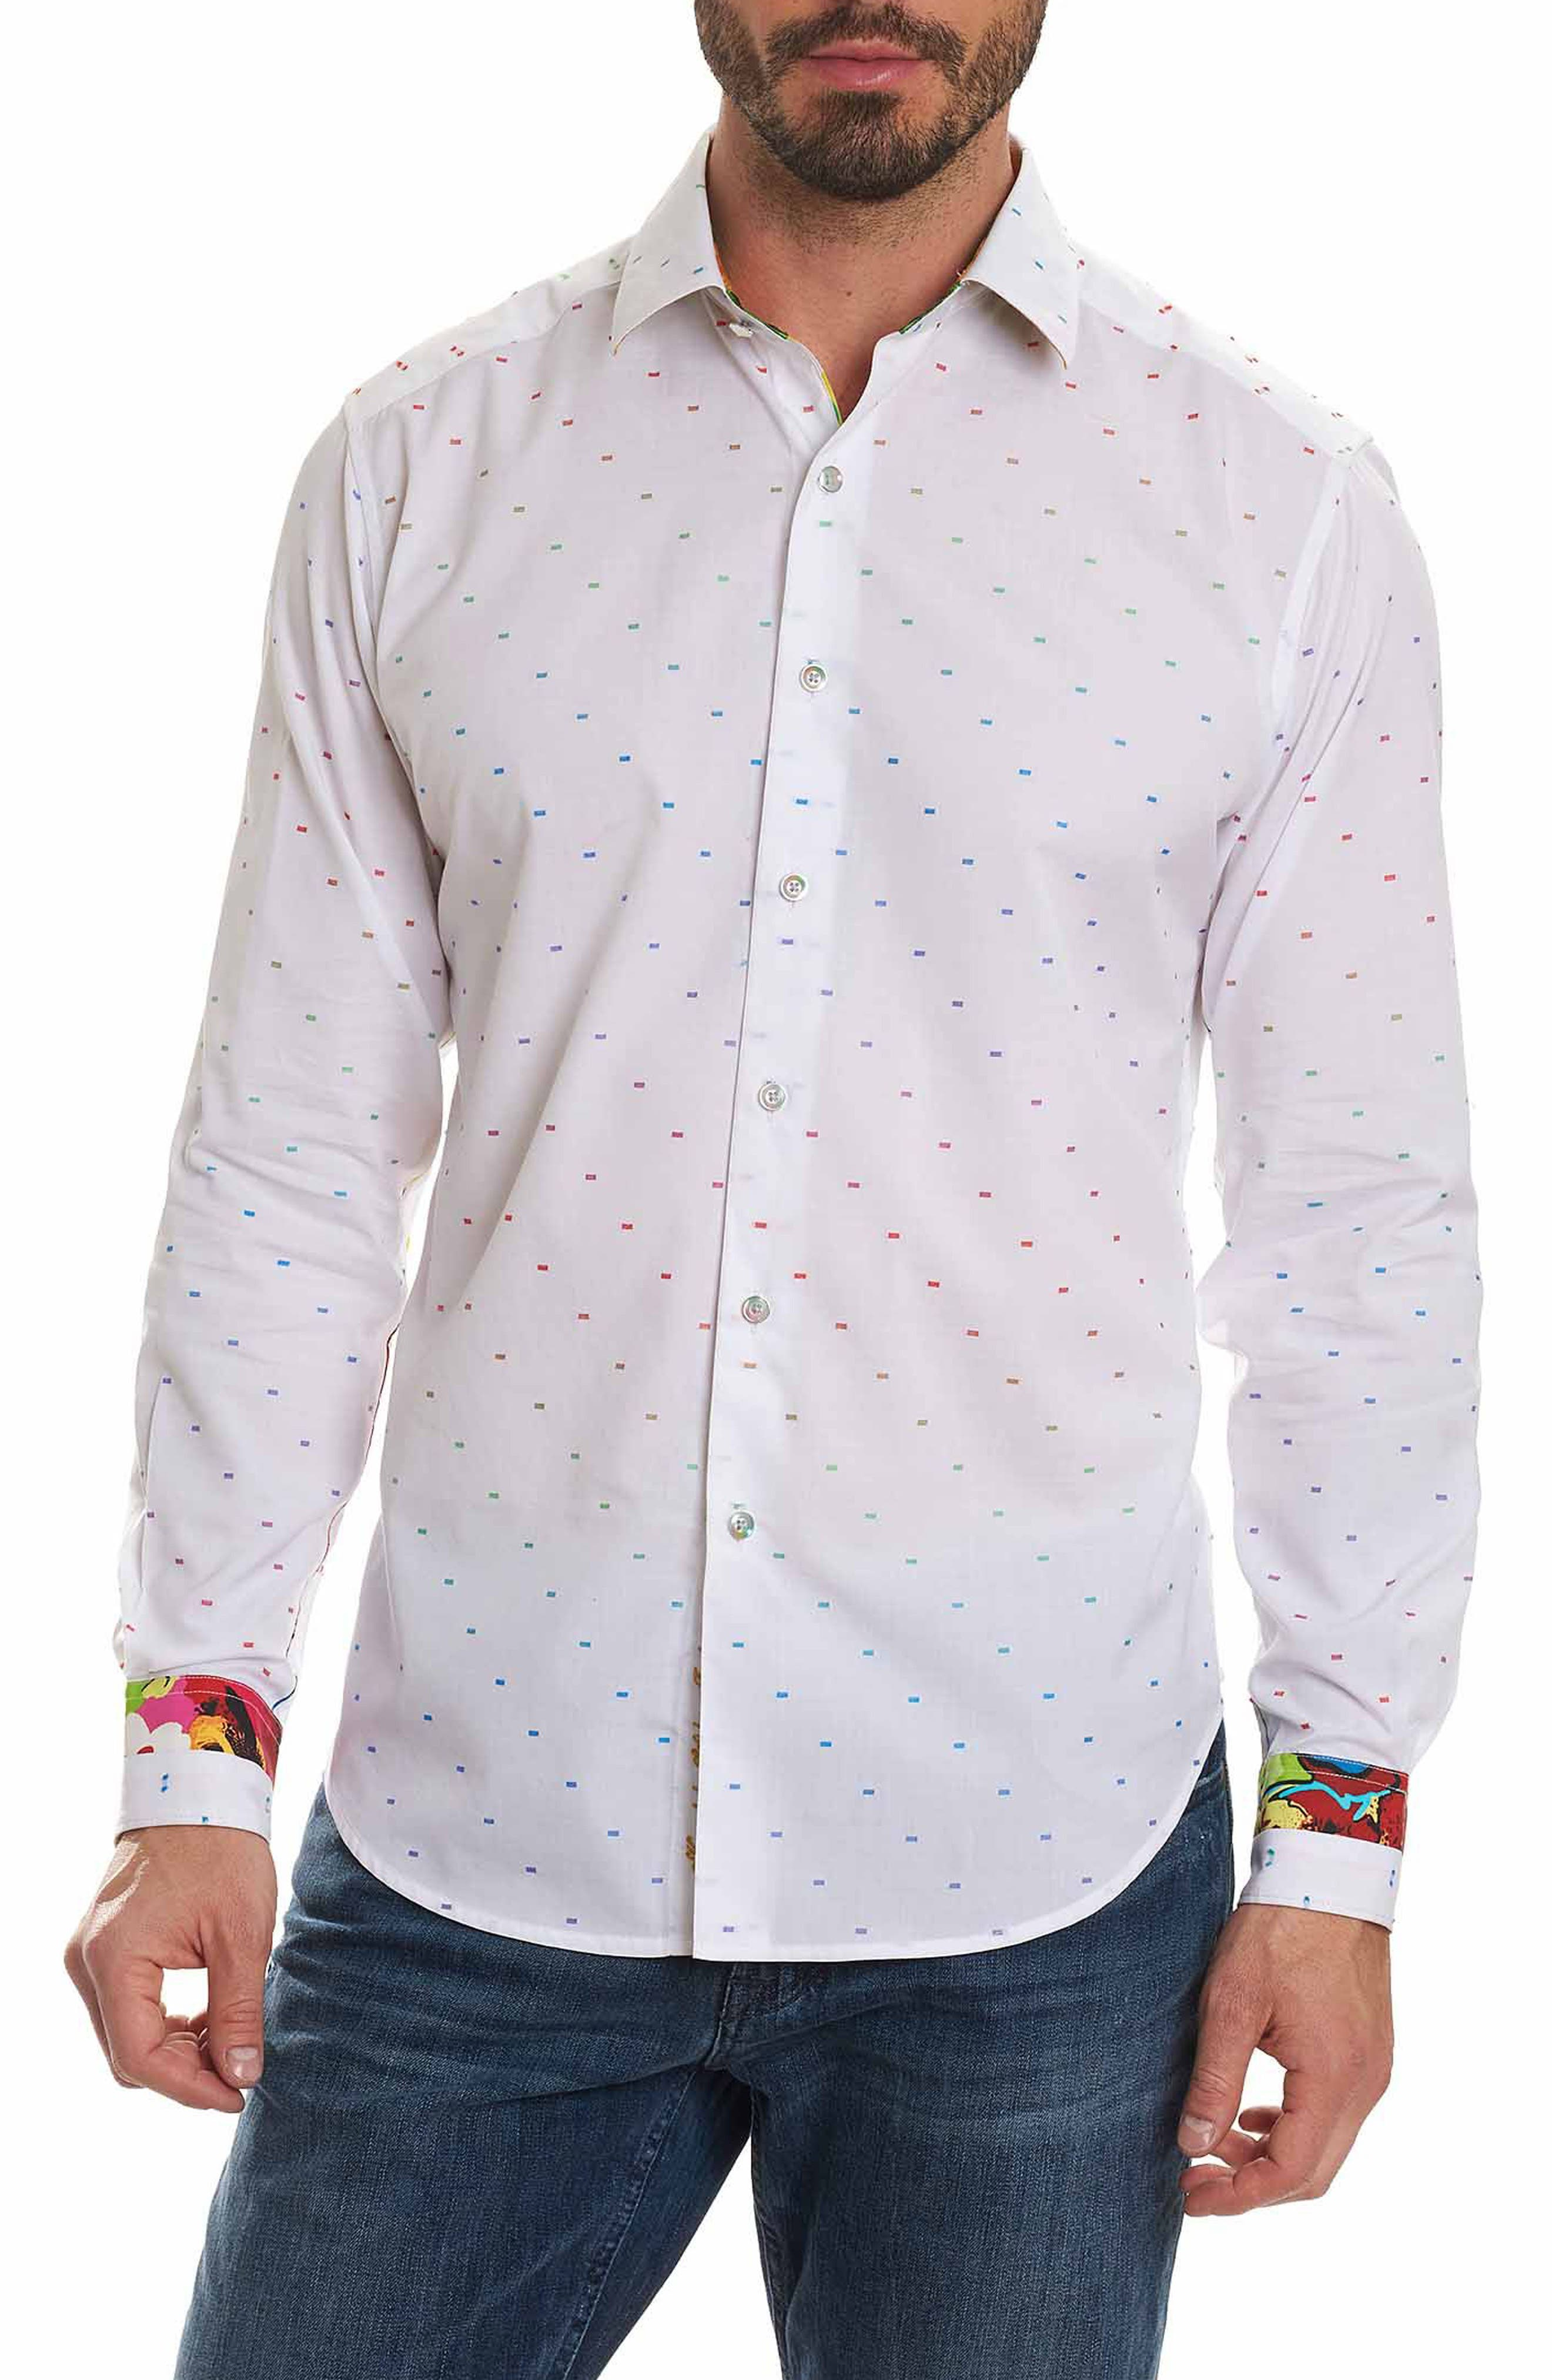 Karyan Classic Fit Jacquard Sport Shirt,                         Main,                         color, 100